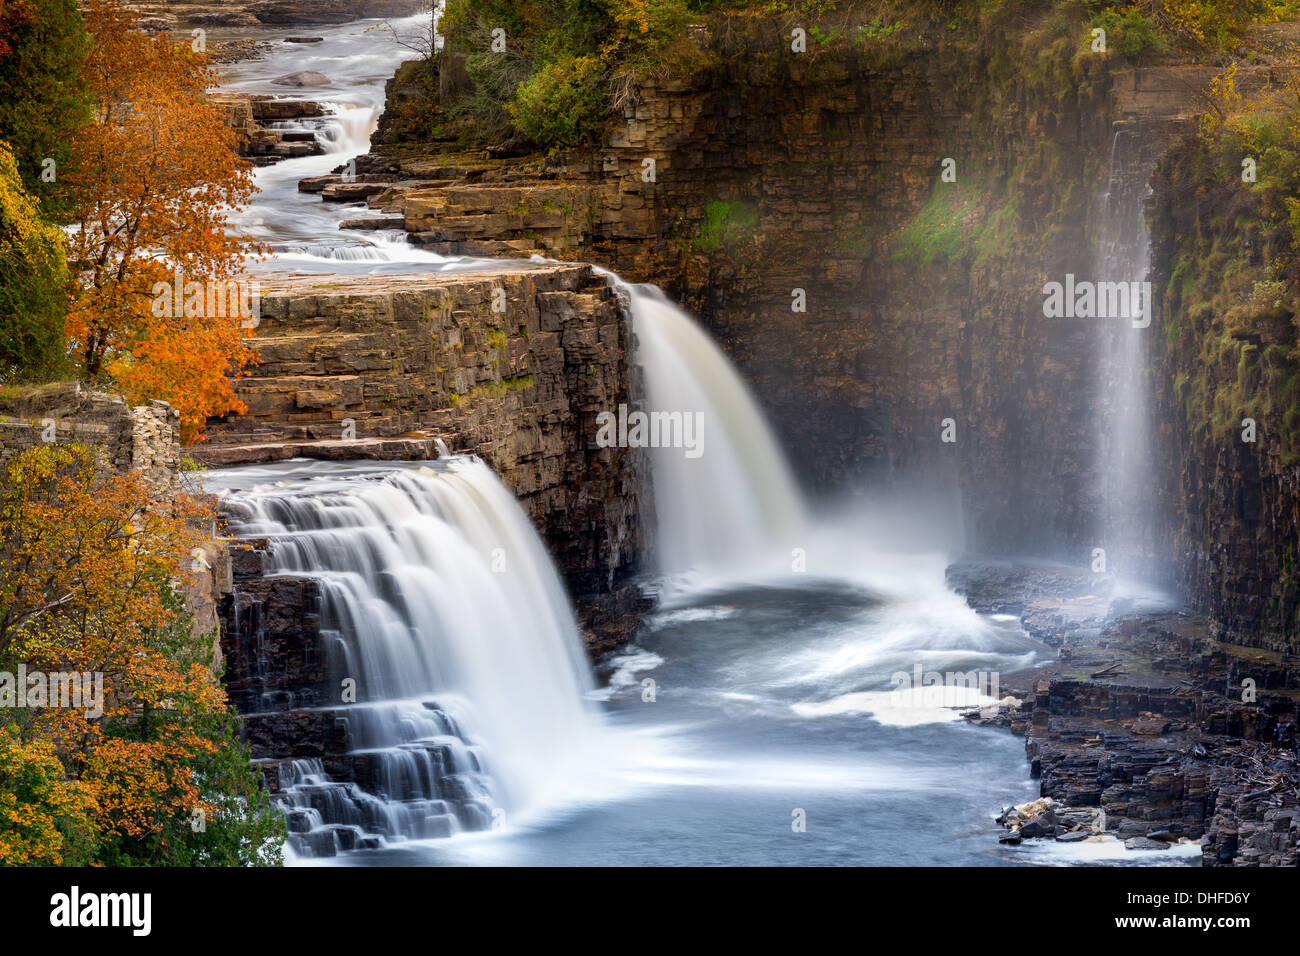 Ausable Chasm Waterfall at the peak of the fall foliage colors - Stock Image